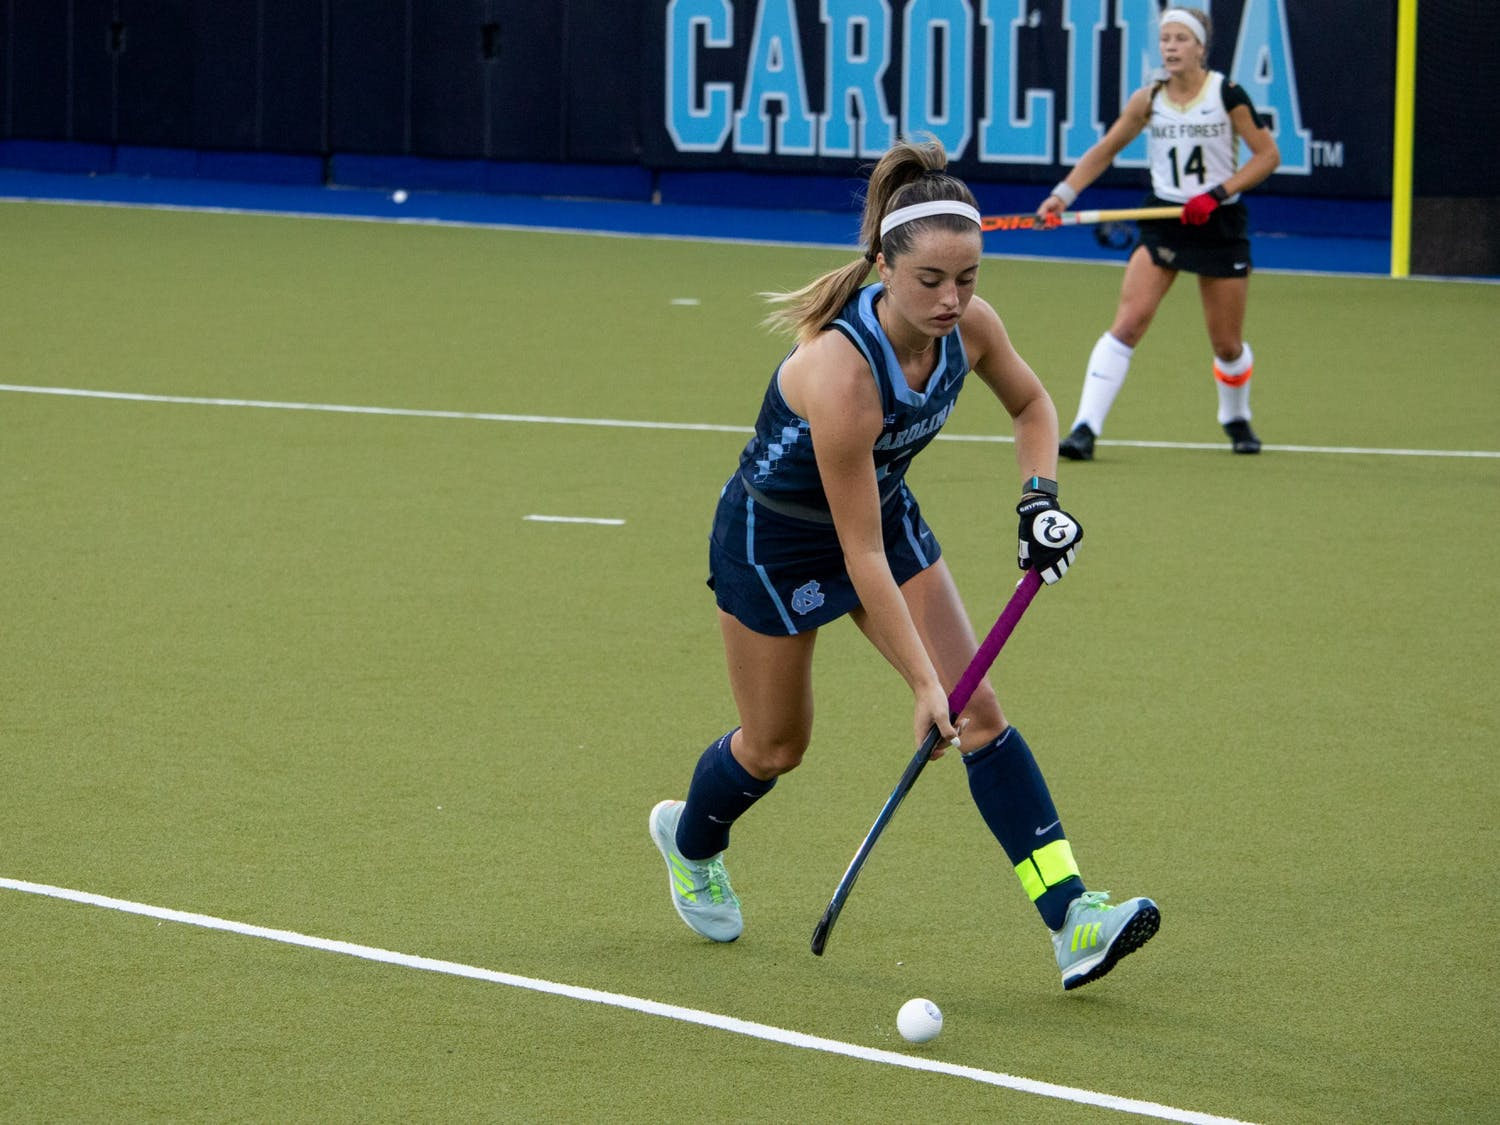 Junior forward Erin Matson (1) makes a pass during a game against Wake Forest on Friday, Oct. 30, 2020.